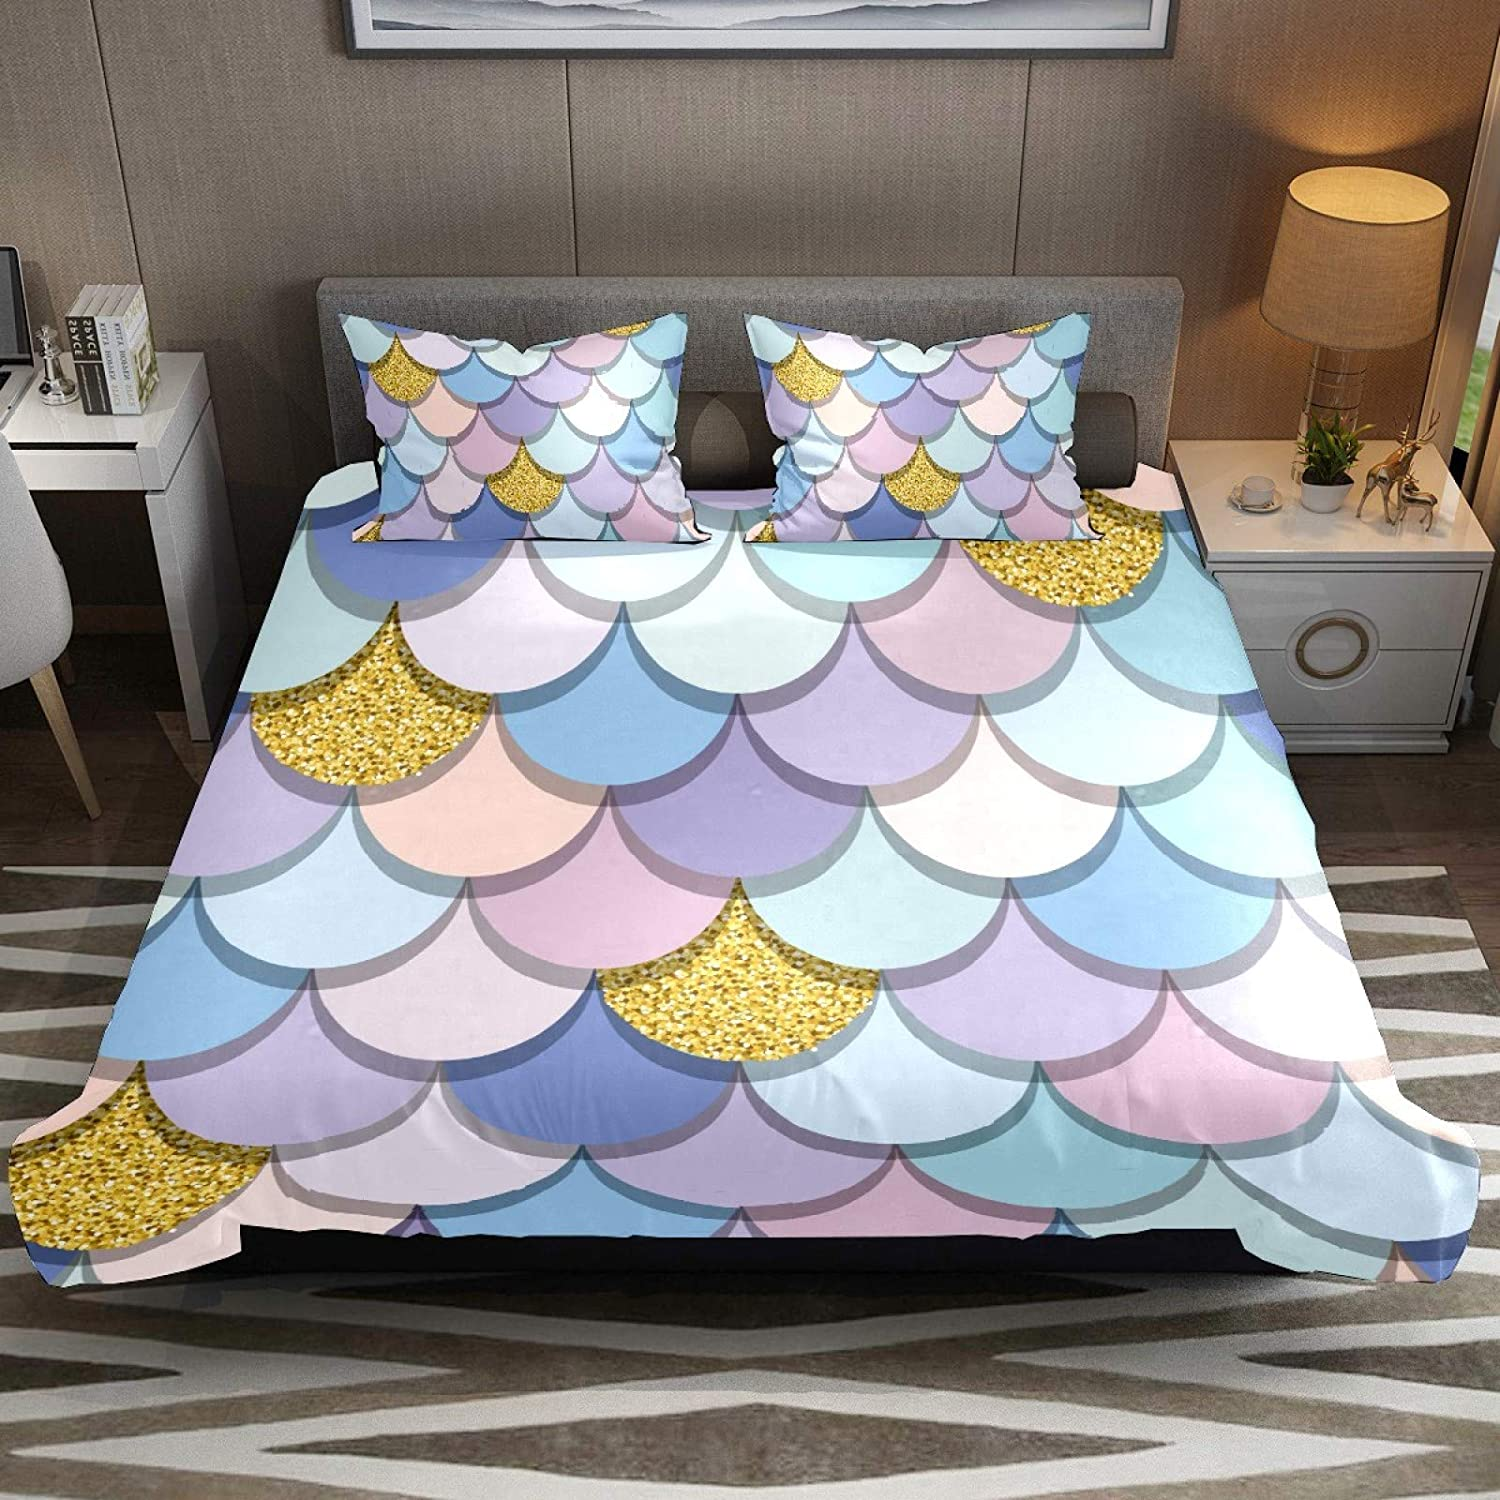 N\O 3 Pcs Beautiful Fish Scale Wavemermaid Duvet Cover Set Modern Customize 71'' x 87'' Breathable Bedding Sets (Extra Long Twin Size) Home Decor for Kids Children Teens Boys Girls